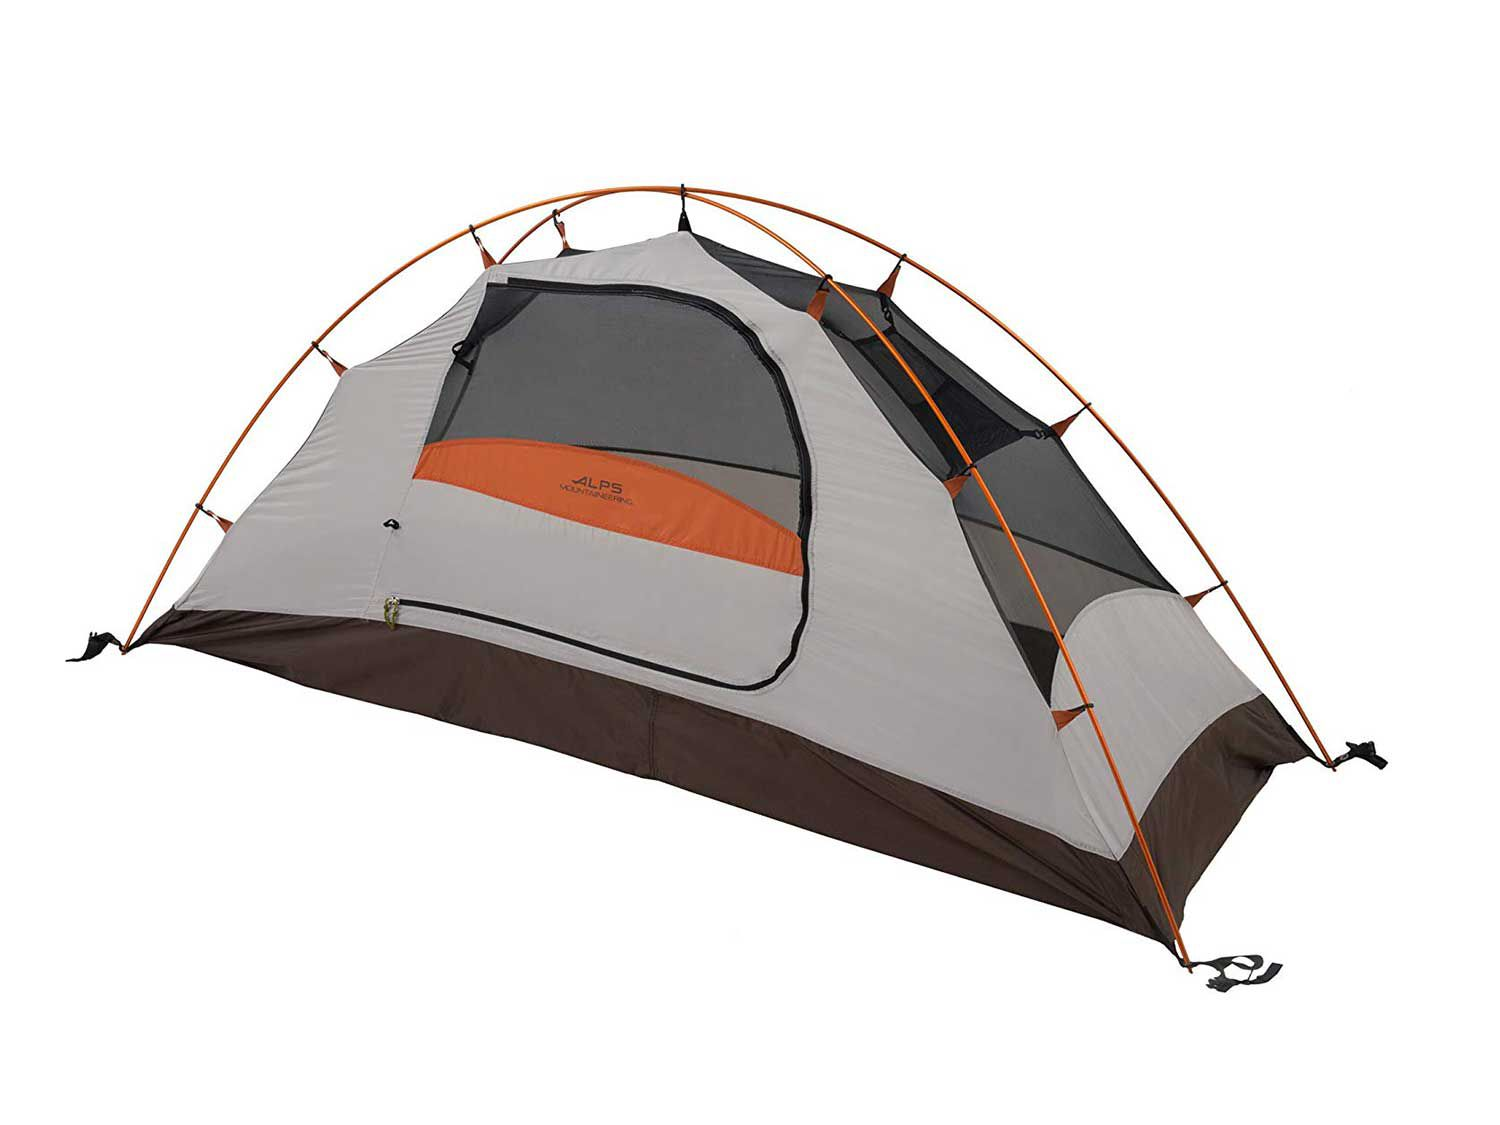 Perfect for the solo motorcycle camper, the Lynx 1-Person Tent has enough room for you and your gear with its extra vestibule.